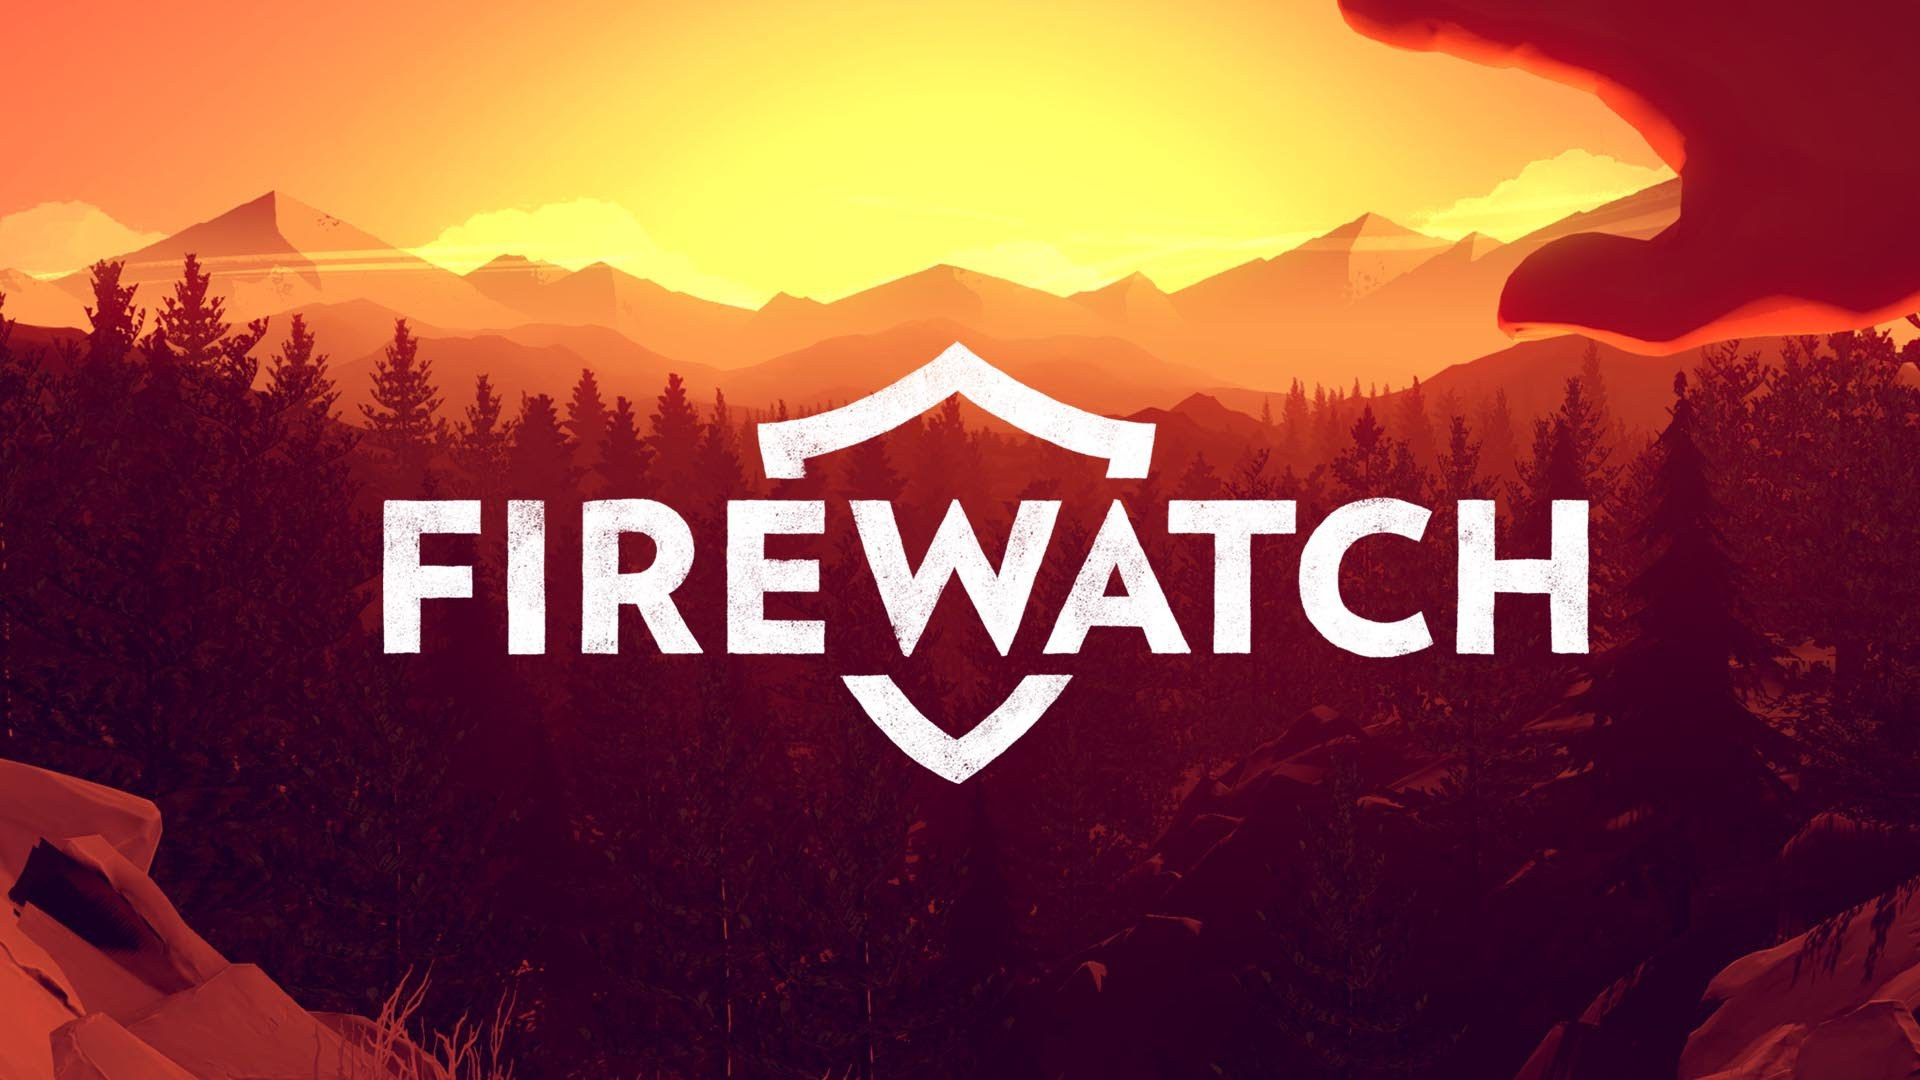 firewatch logo desktop wallpaper 415